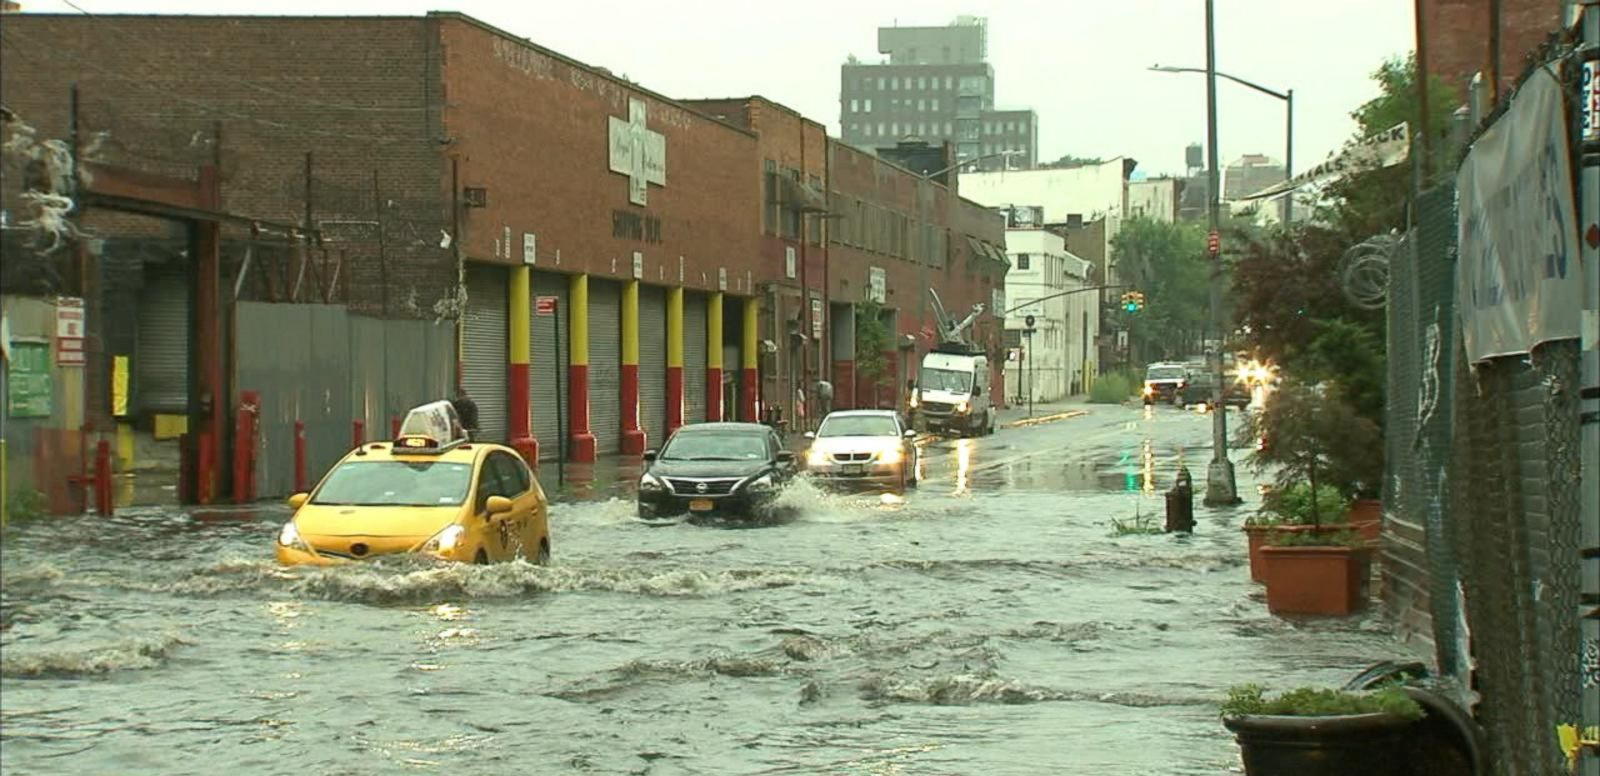 VIDEO: Flash Floods Hit the Northeast